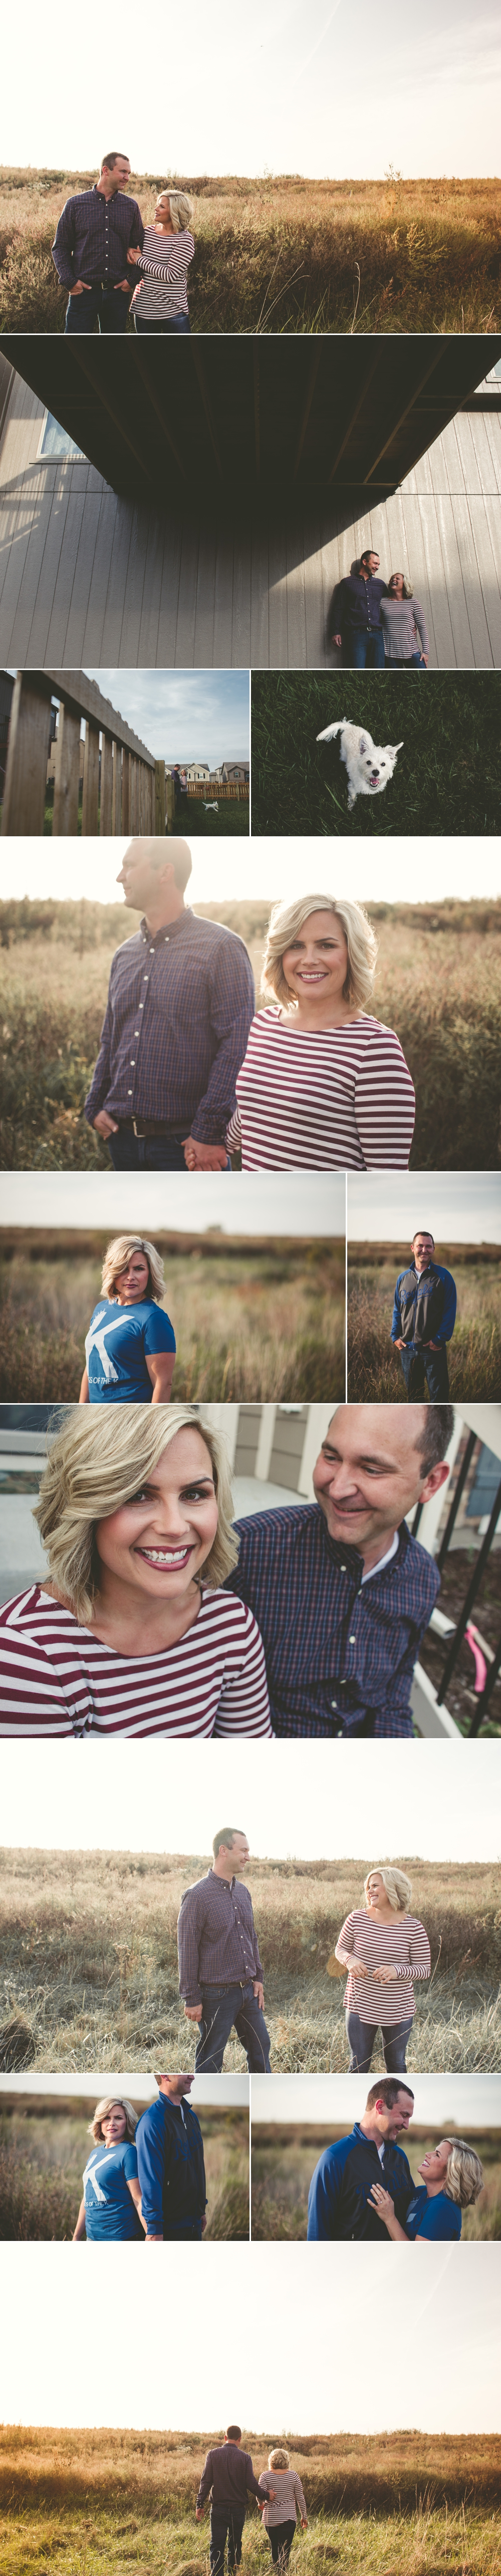 jason_domingues_photography_best_kansas_city_photographer_wedding_engagement_kc_creative_home_field_experienced_documentary_portraits